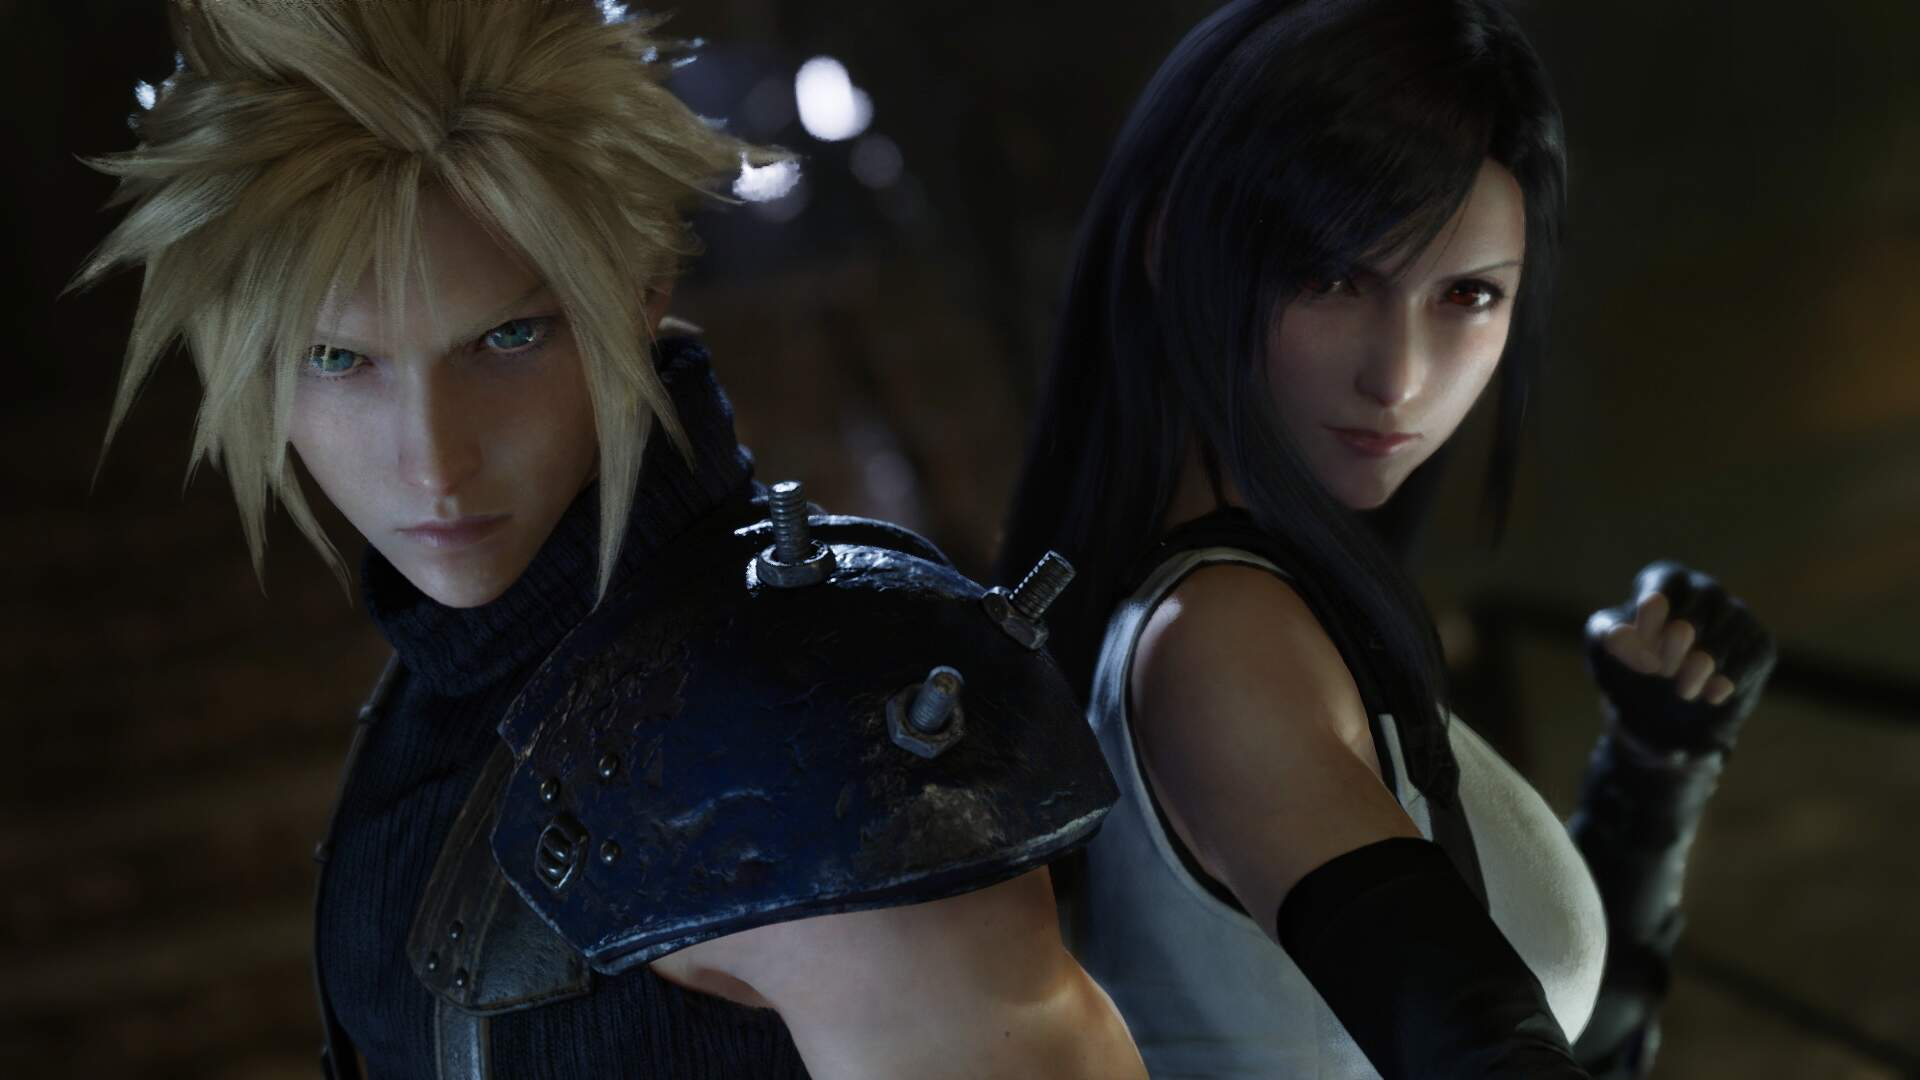 Final Fantasy 7 Remake is the Latest Game to Get a Dreams Knockoff